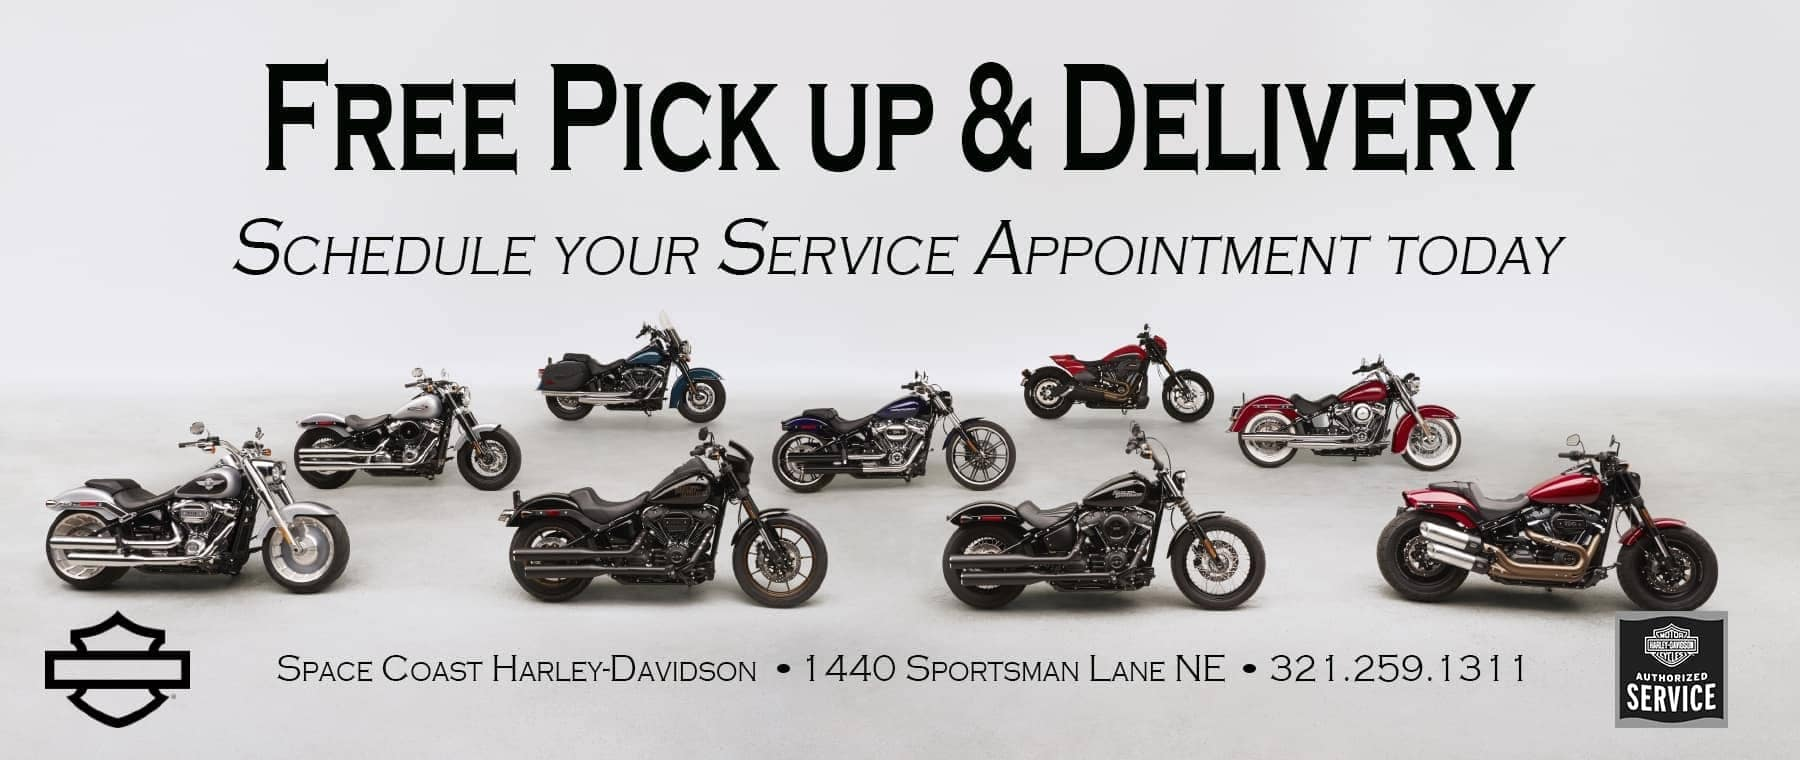 Free Harley-Davidson Service Pick Up and Delivery in Palm Bay FL